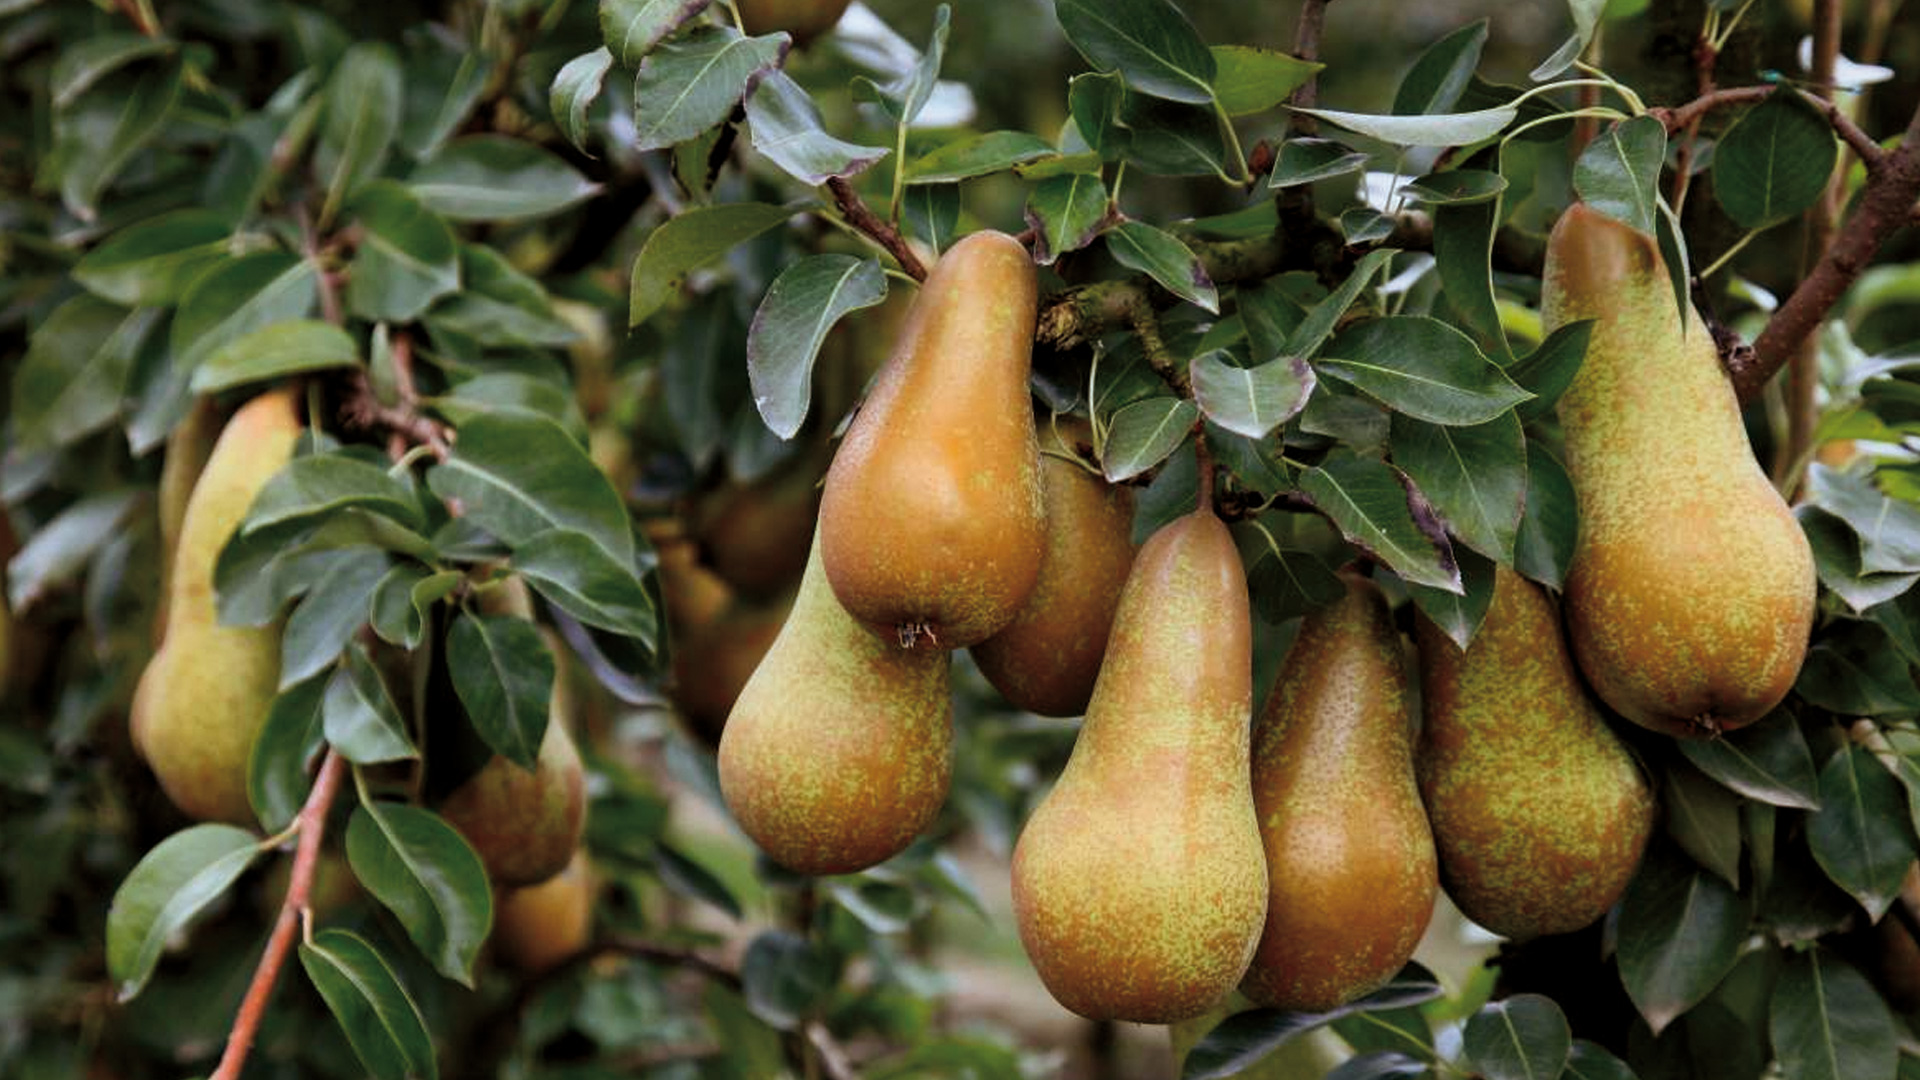 Pere coltivate con concimi naturali e biologici Grown pears with natural and organic fertilizers